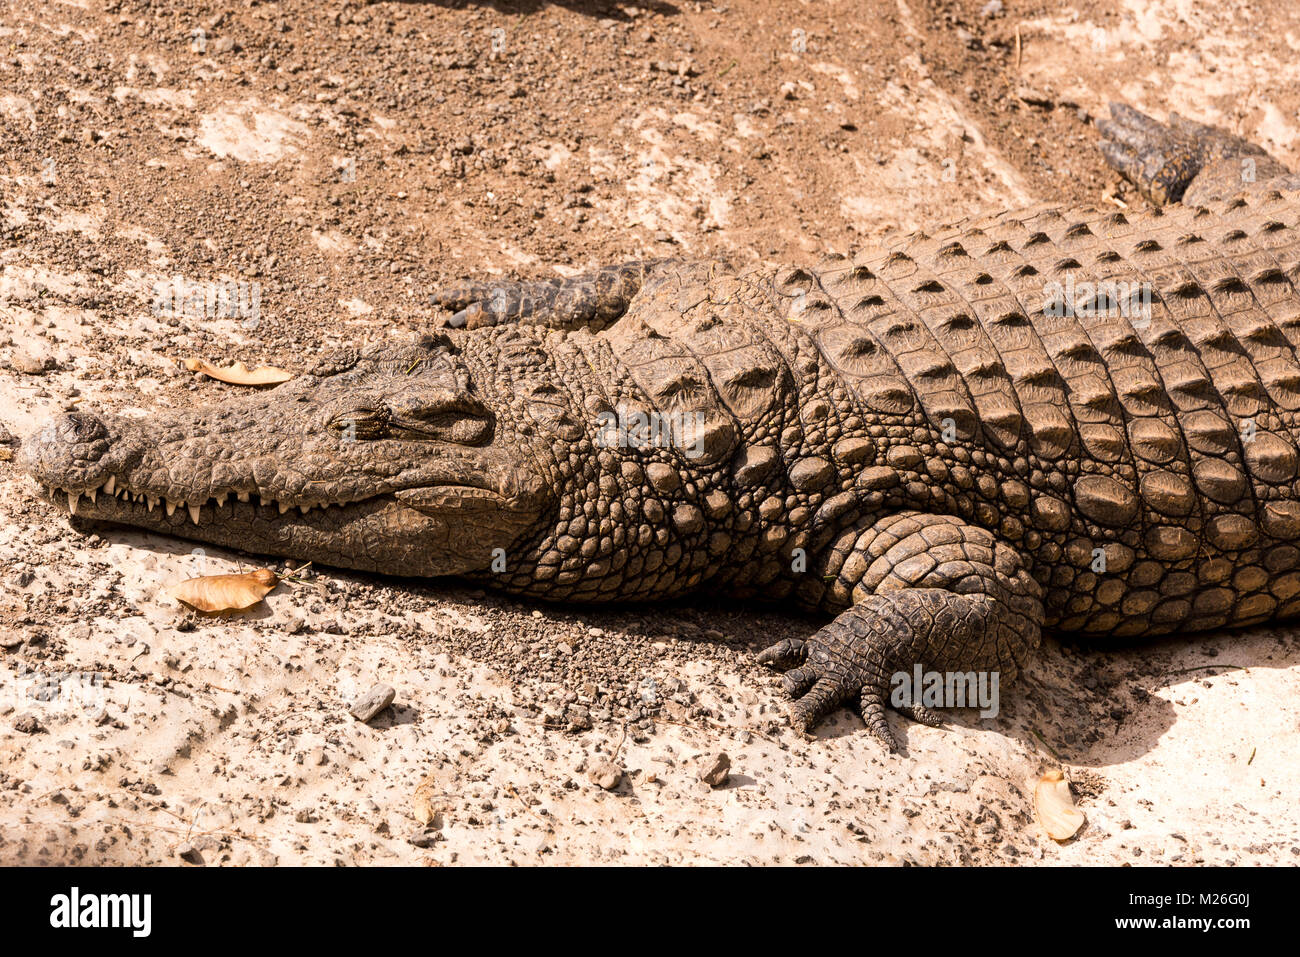 View on a lazy crocodile or alligator - Stock Image